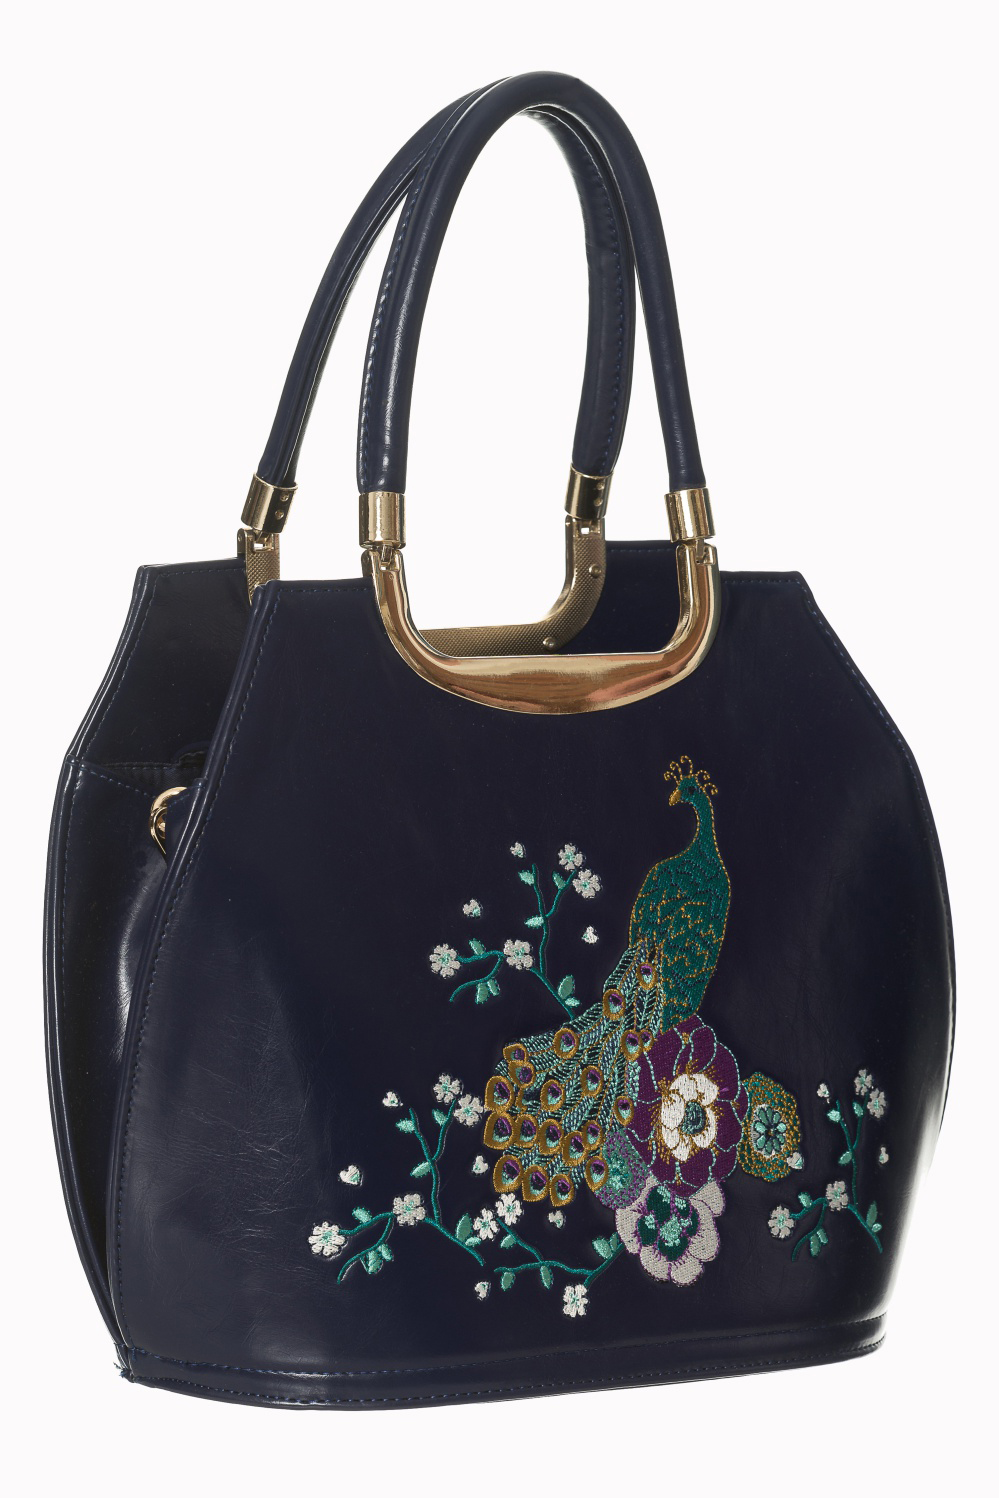 Mayuree Peacock Embroirdered 40's Handbag by Banned Apparel - in Midnight Blue - SALE